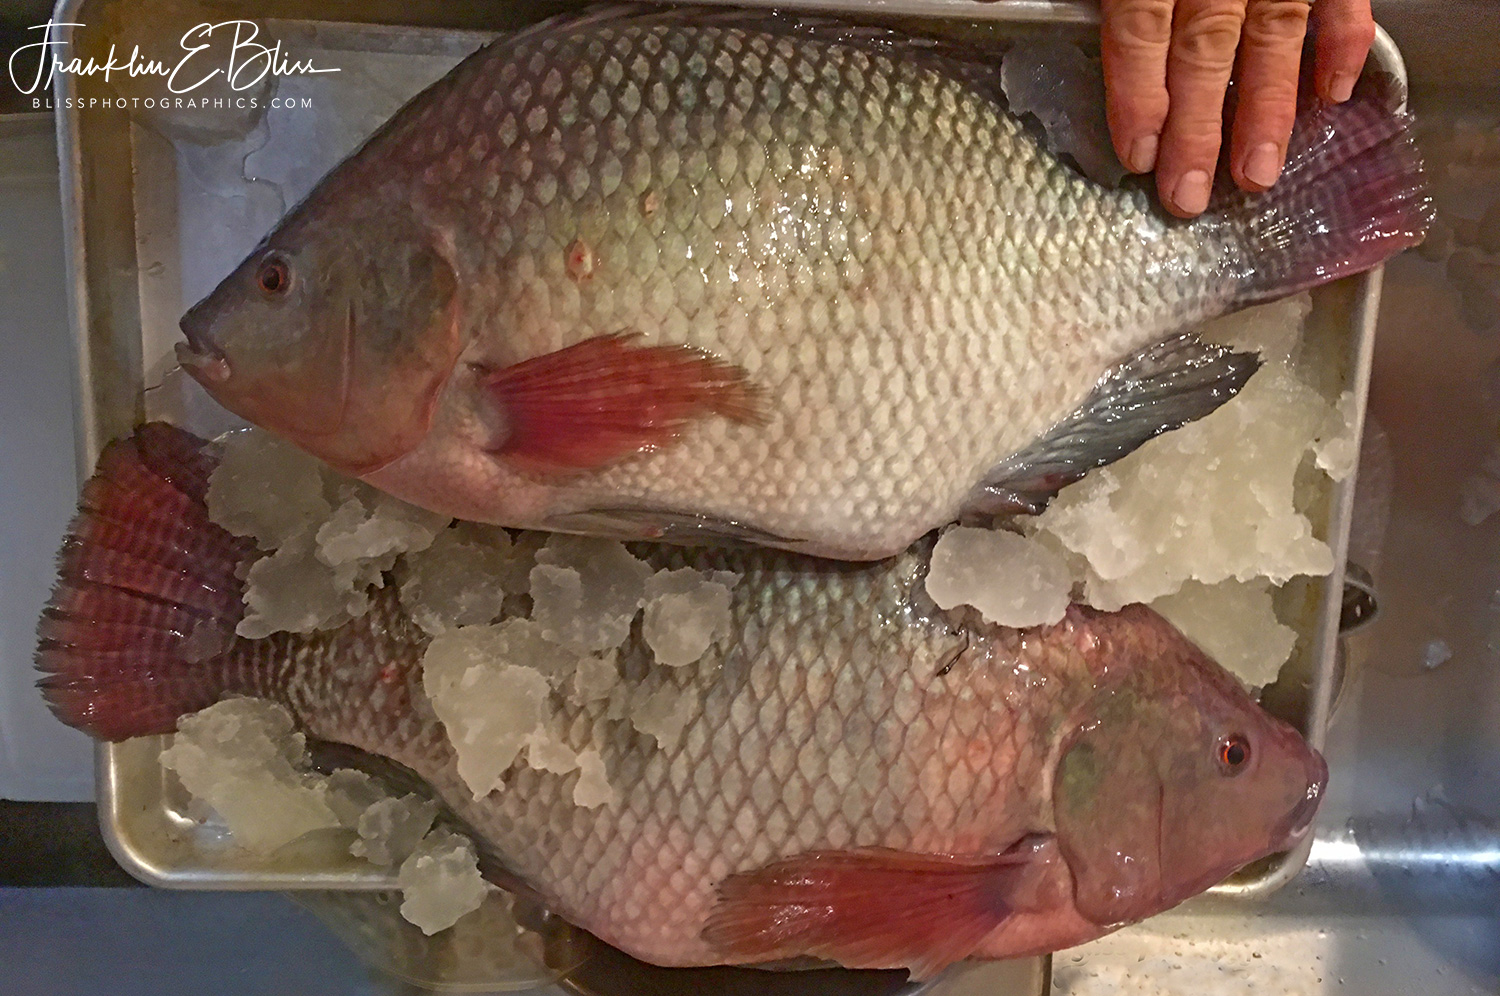 Aquaponic Raised Hybrid (Sterile) Tilapia for Supper